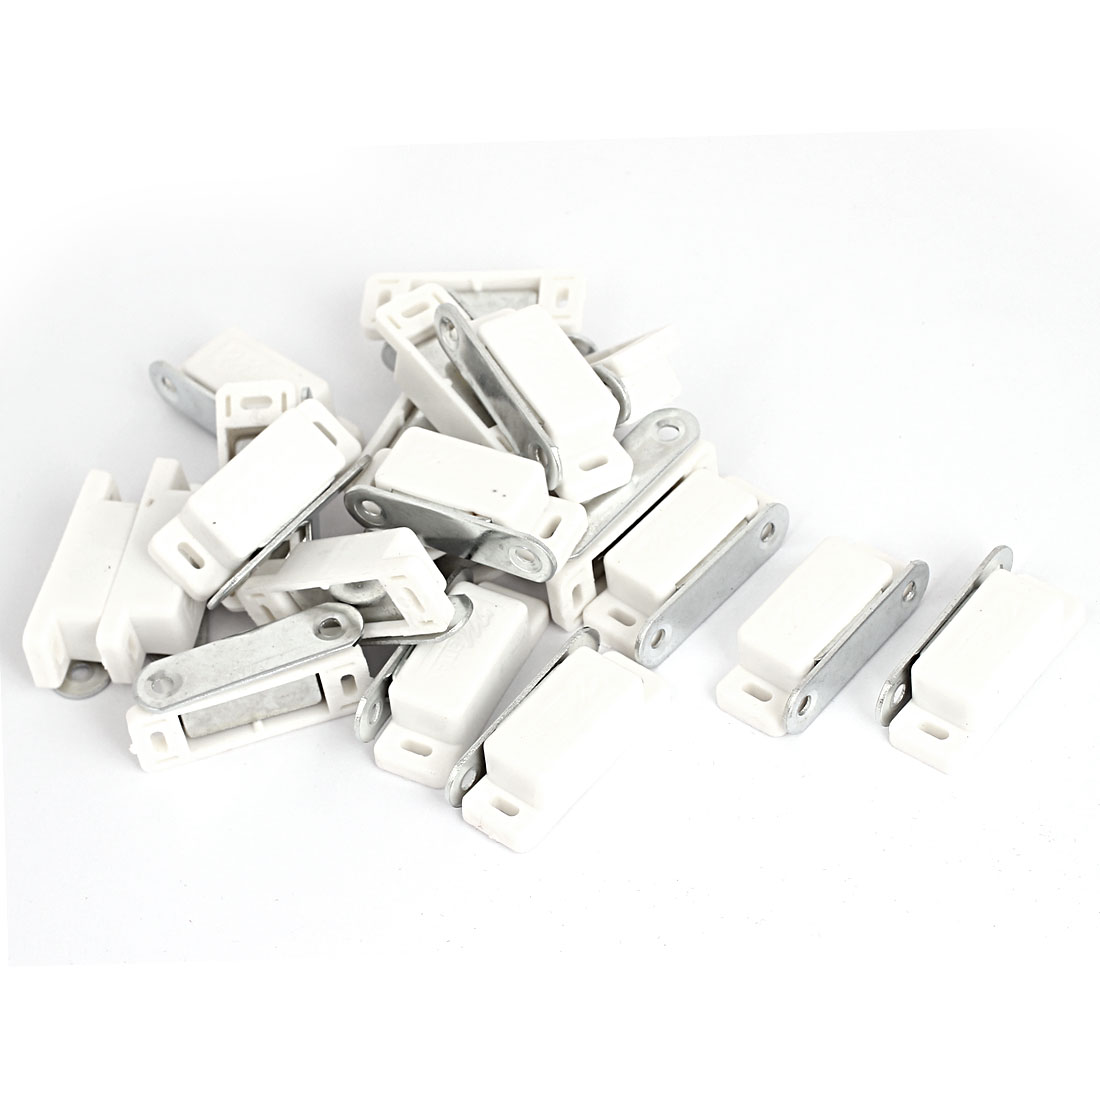 46mm Length Magnetic Catch Latch Metal Plate 20Pcs for Door Cupboard Cabinet